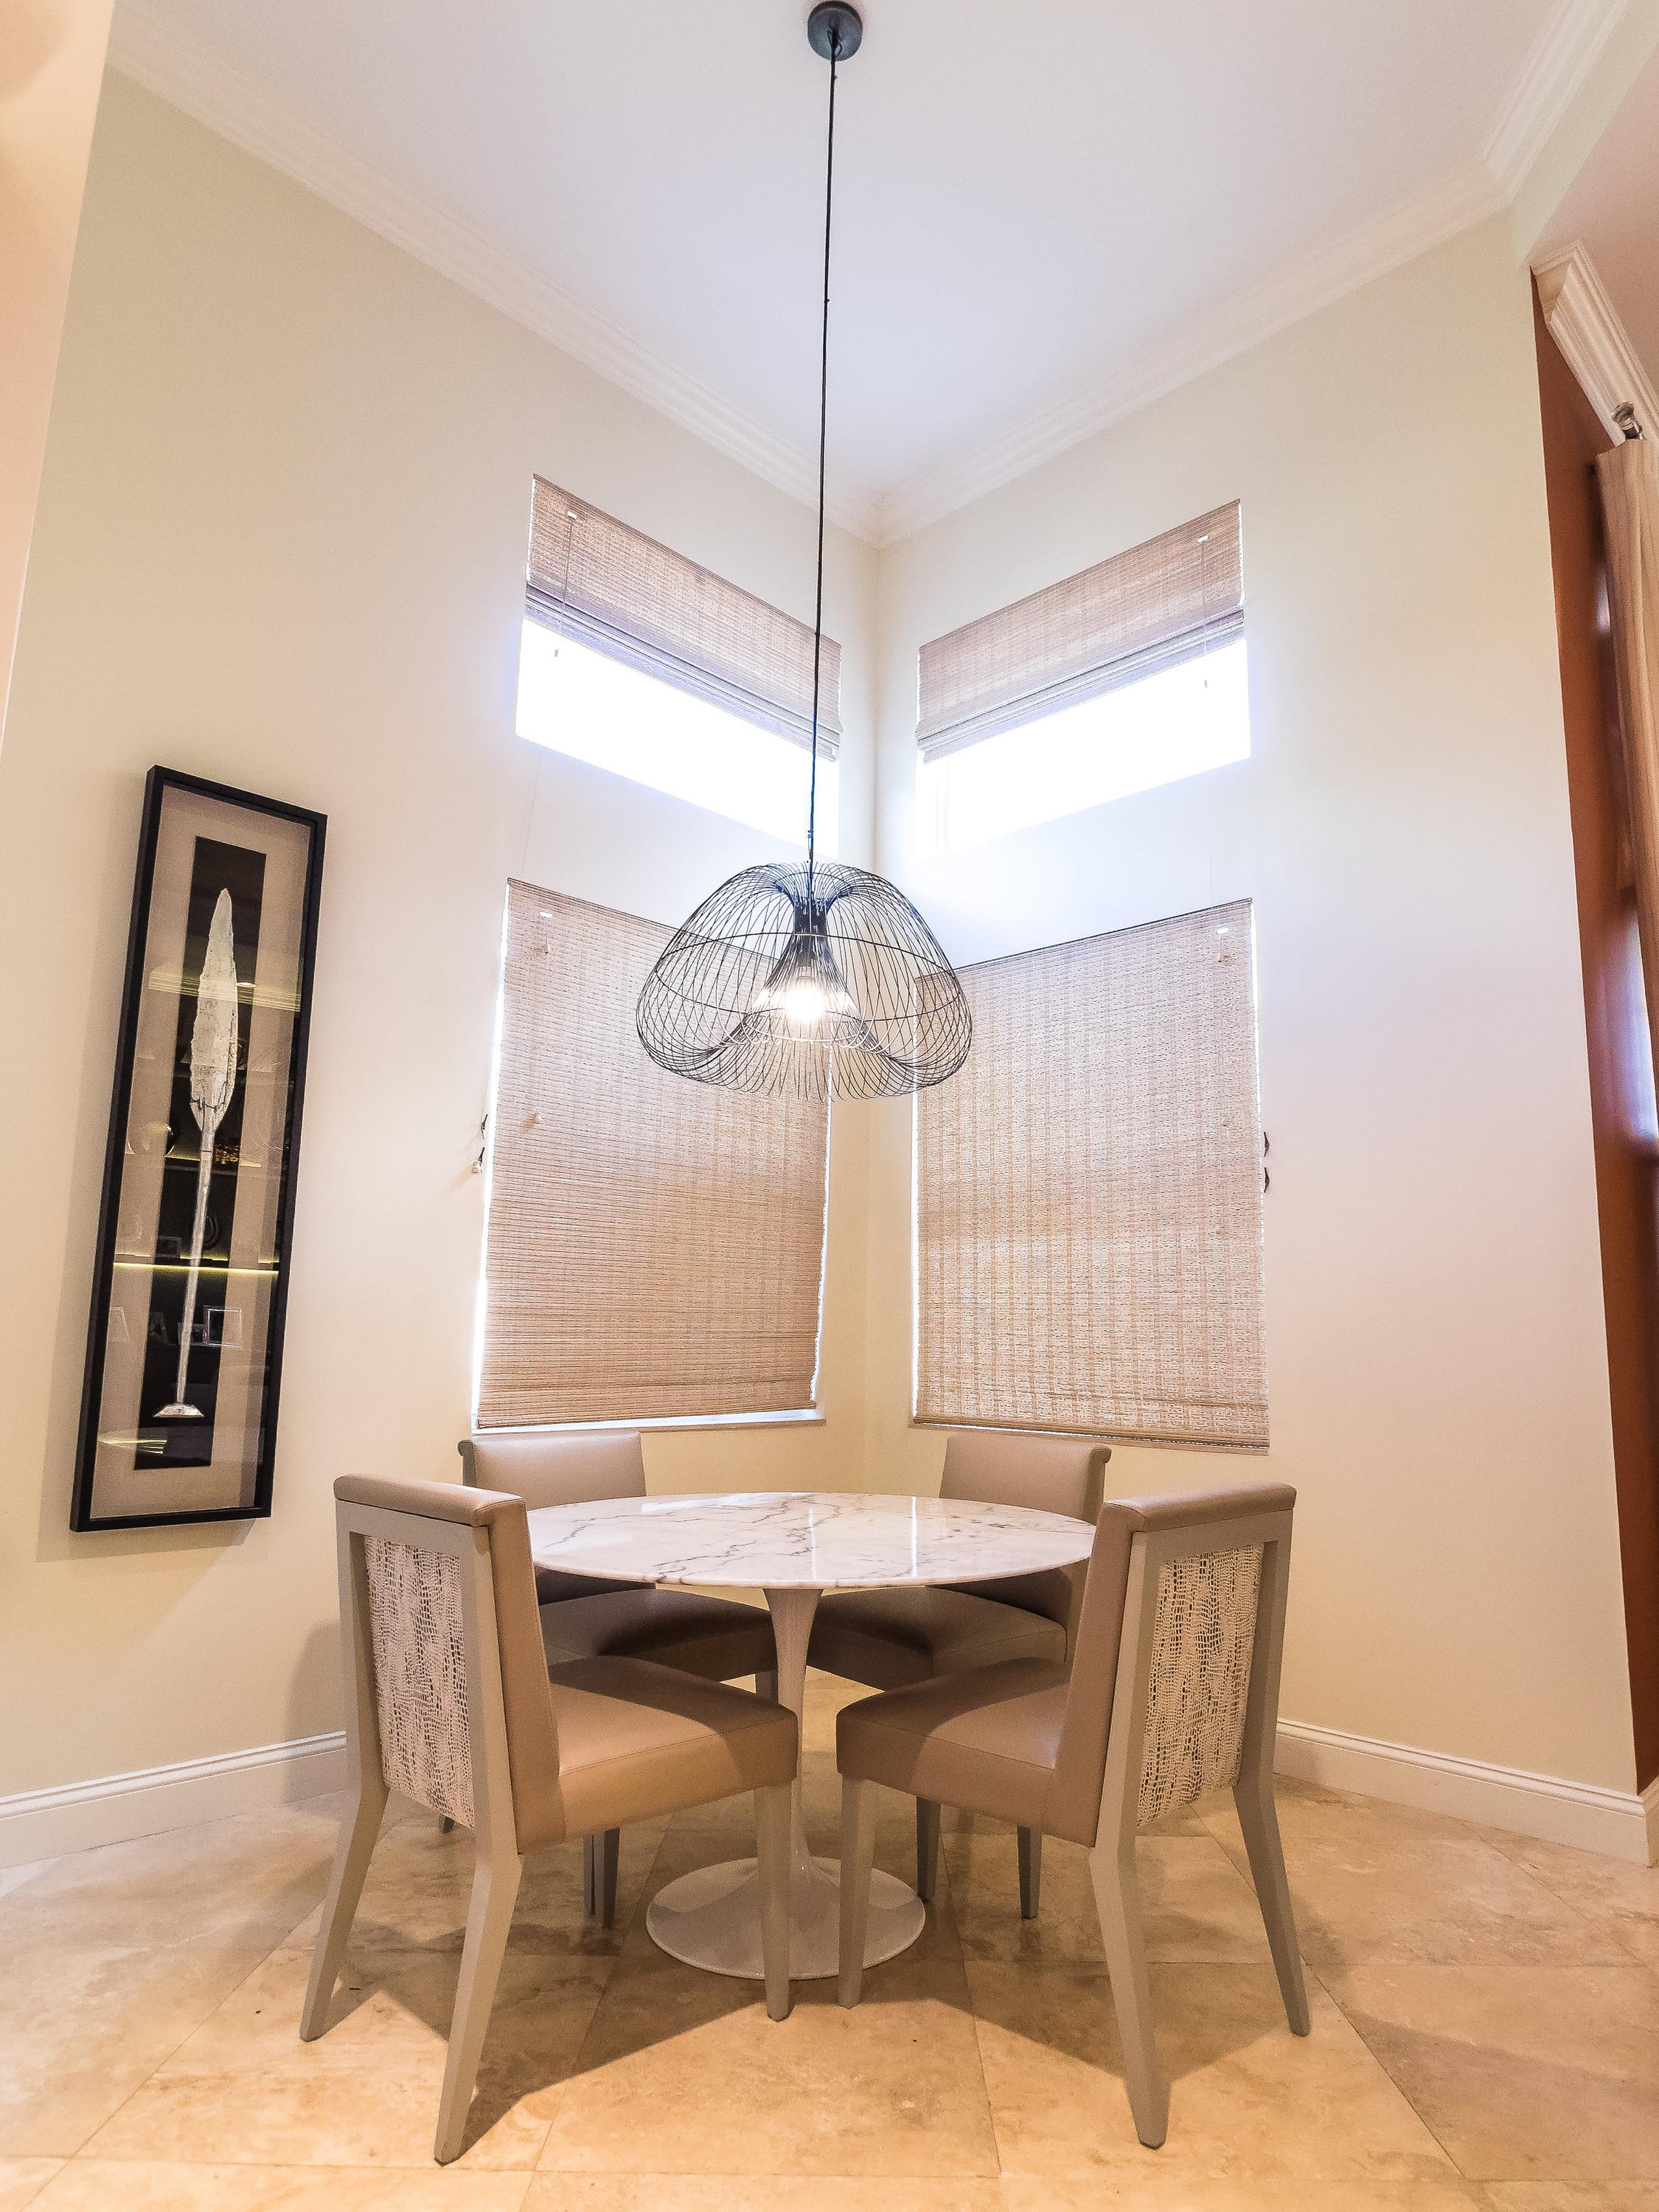 Dining room with a round table, soft seat chairs, artwork on the wall and custom ceiling lamp